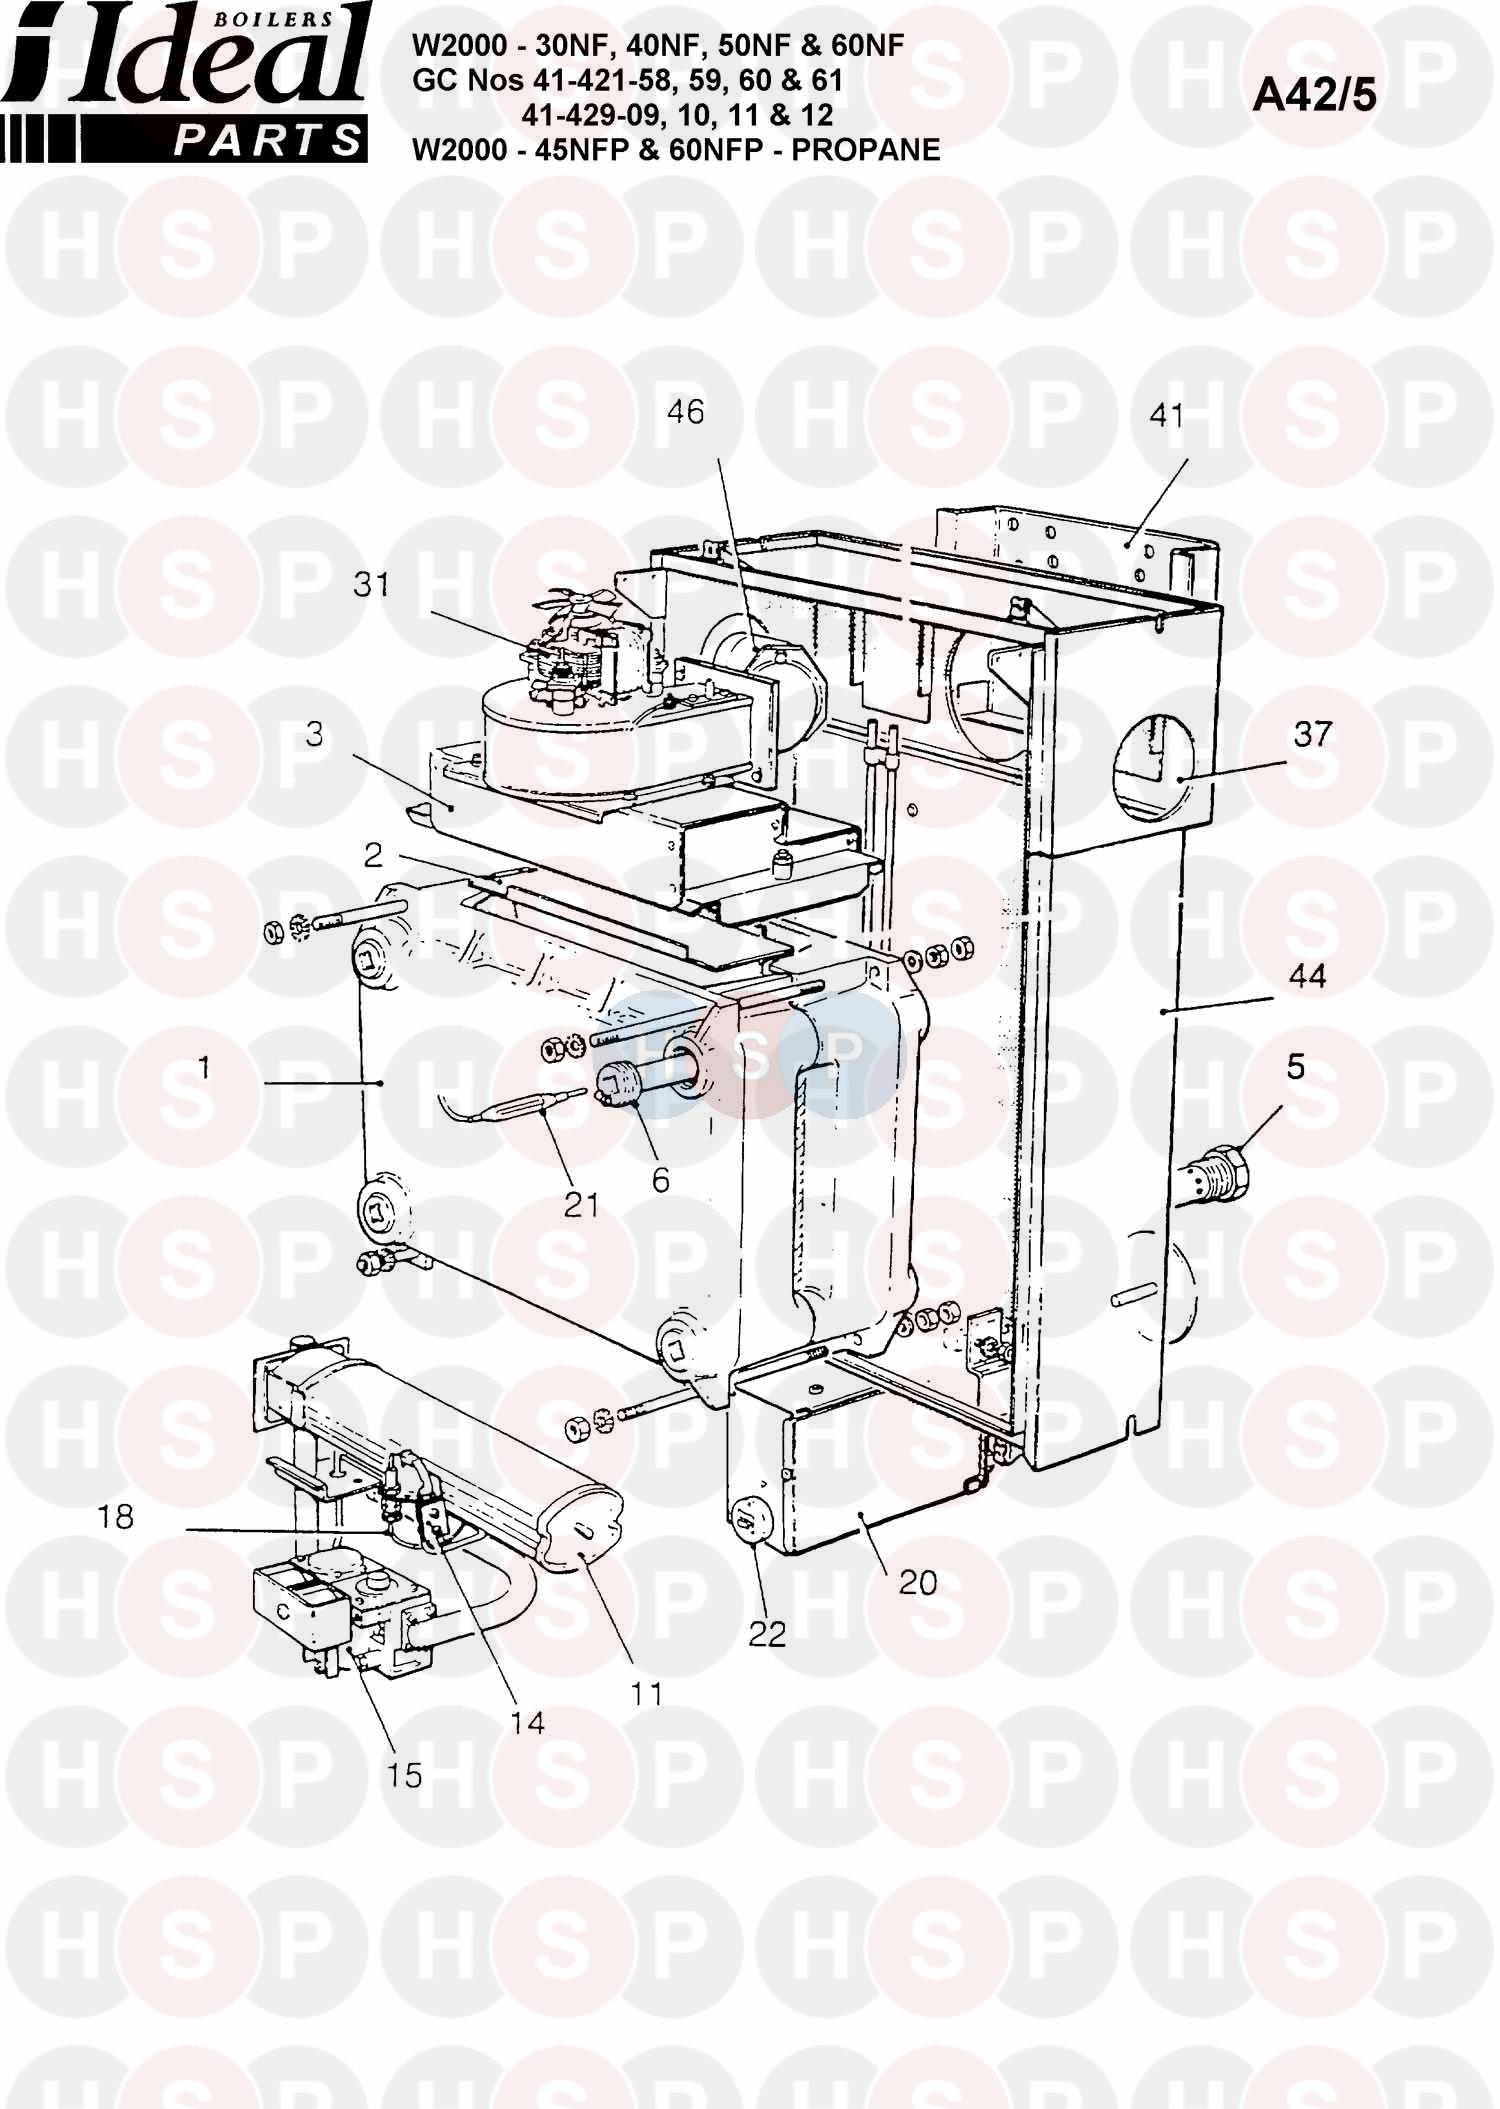 Ideal W2000 30NF (HONEYWELL CONT.) 1991 Appliance Diagram